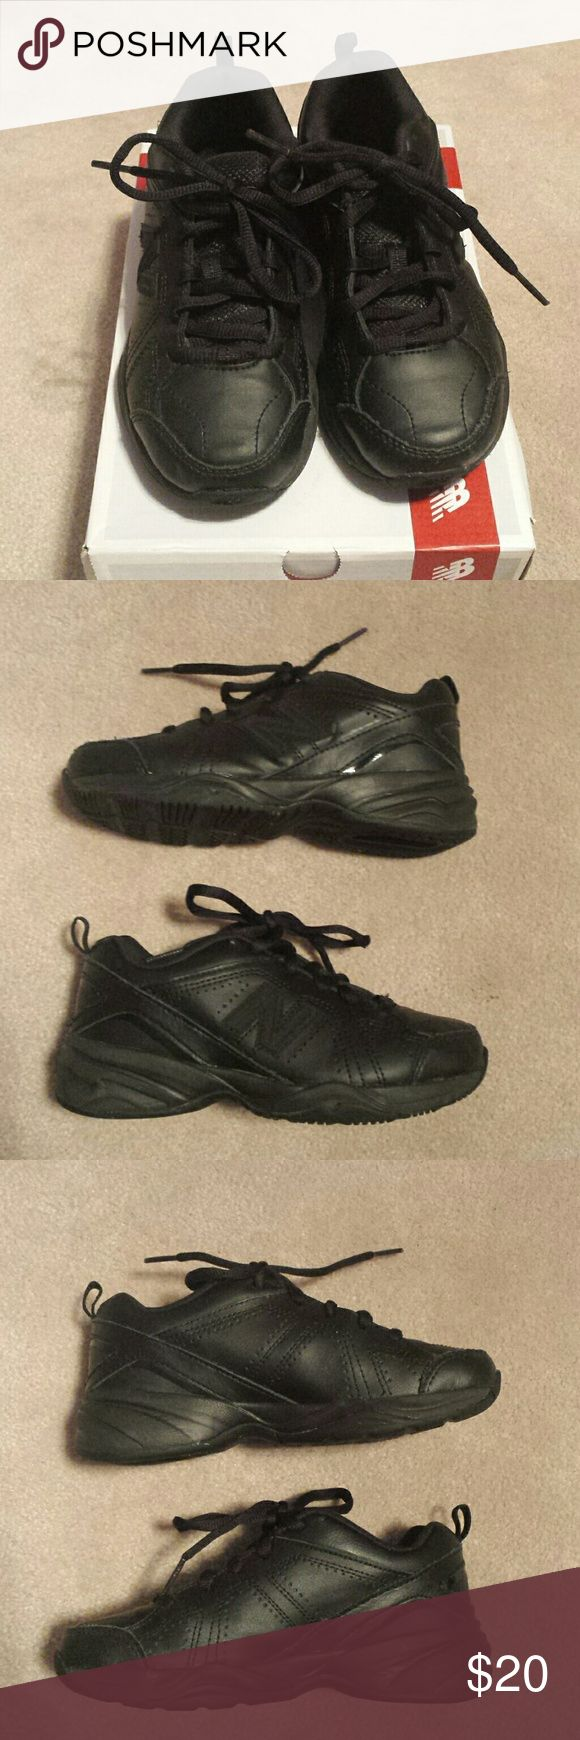 New Balance Training Black Sneakers New Balance Training Black Sneakers.  Perfect for school uniforms.  Excellent condition.  Minor discoloration on bottom from lite wearing. 17 on tag for identification. Comes with original box.  Smoke free house. Reasonable offers are accepted and I discount bundles. Let me know if you have any questions. New Balance Shoes Sneakers